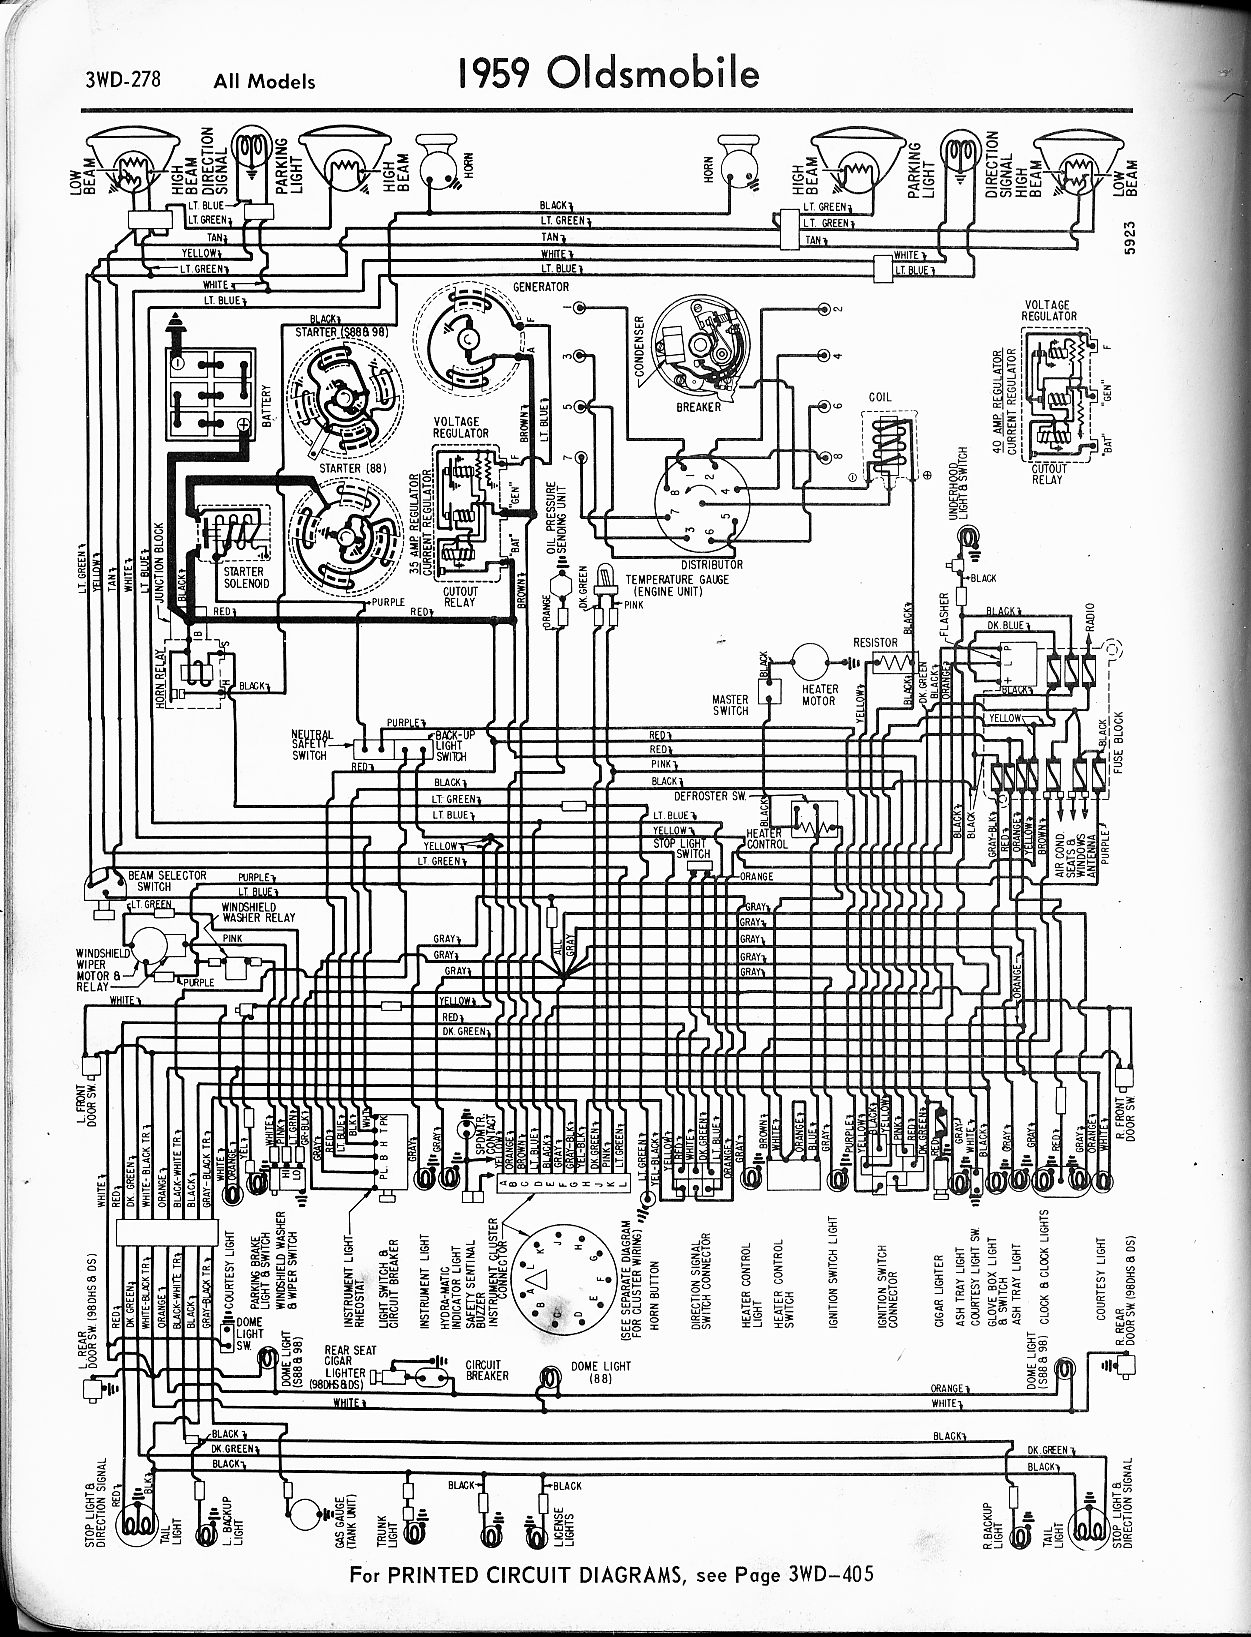 MWire5765 278 oldsmobile wiring diagrams the old car manual project Basic Turn Signal Wiring Diagram at edmiracle.co